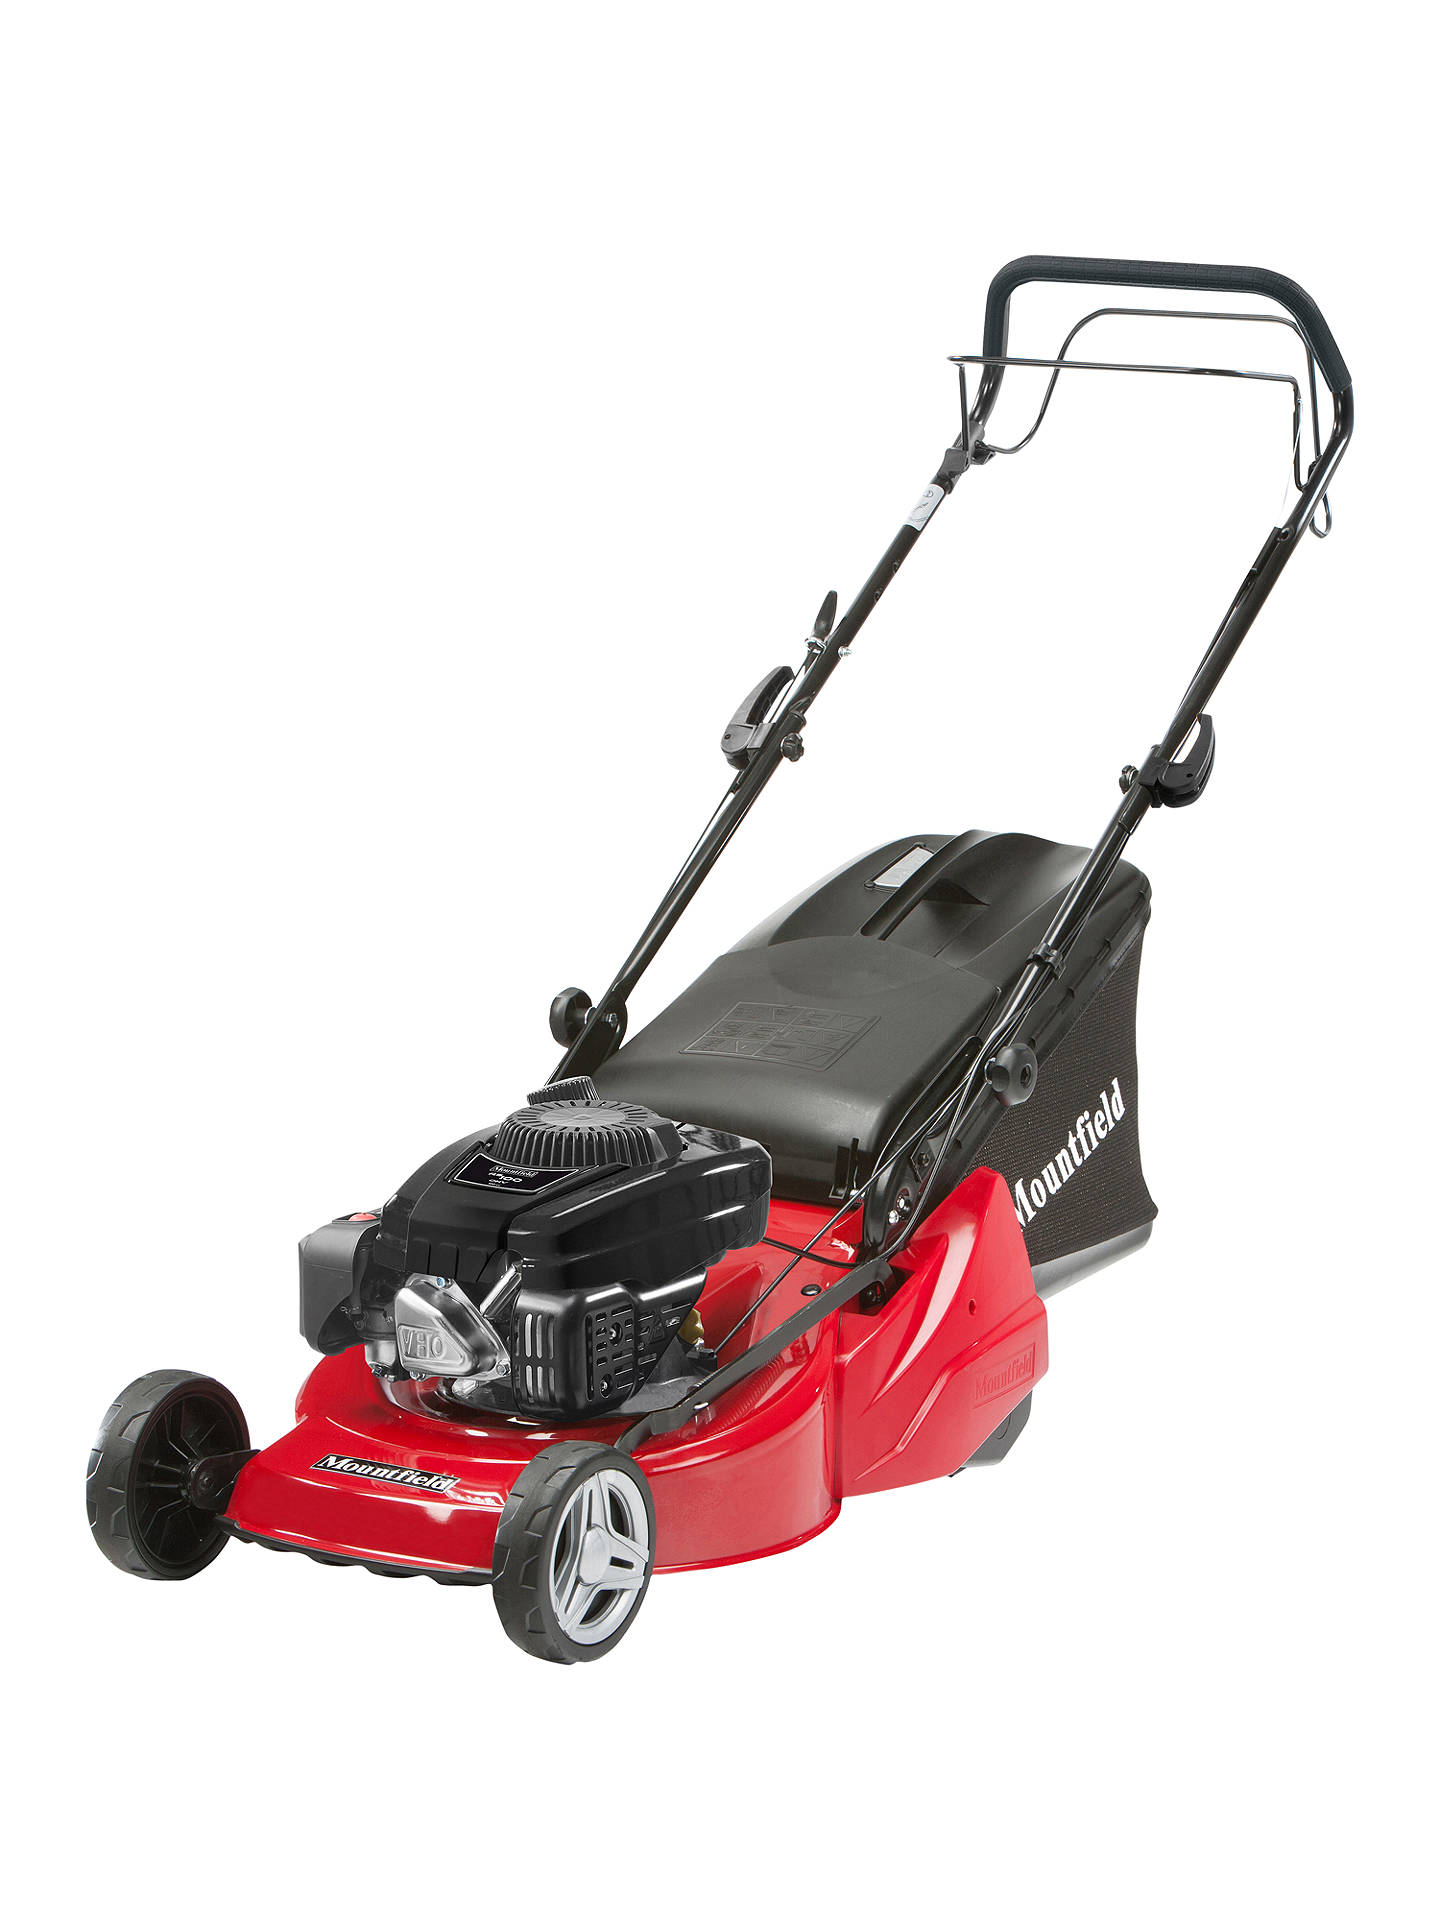 BuyMountfield S421R PD 41cm Self-Propelled Petrol Lawnmower Online at johnlewis.com